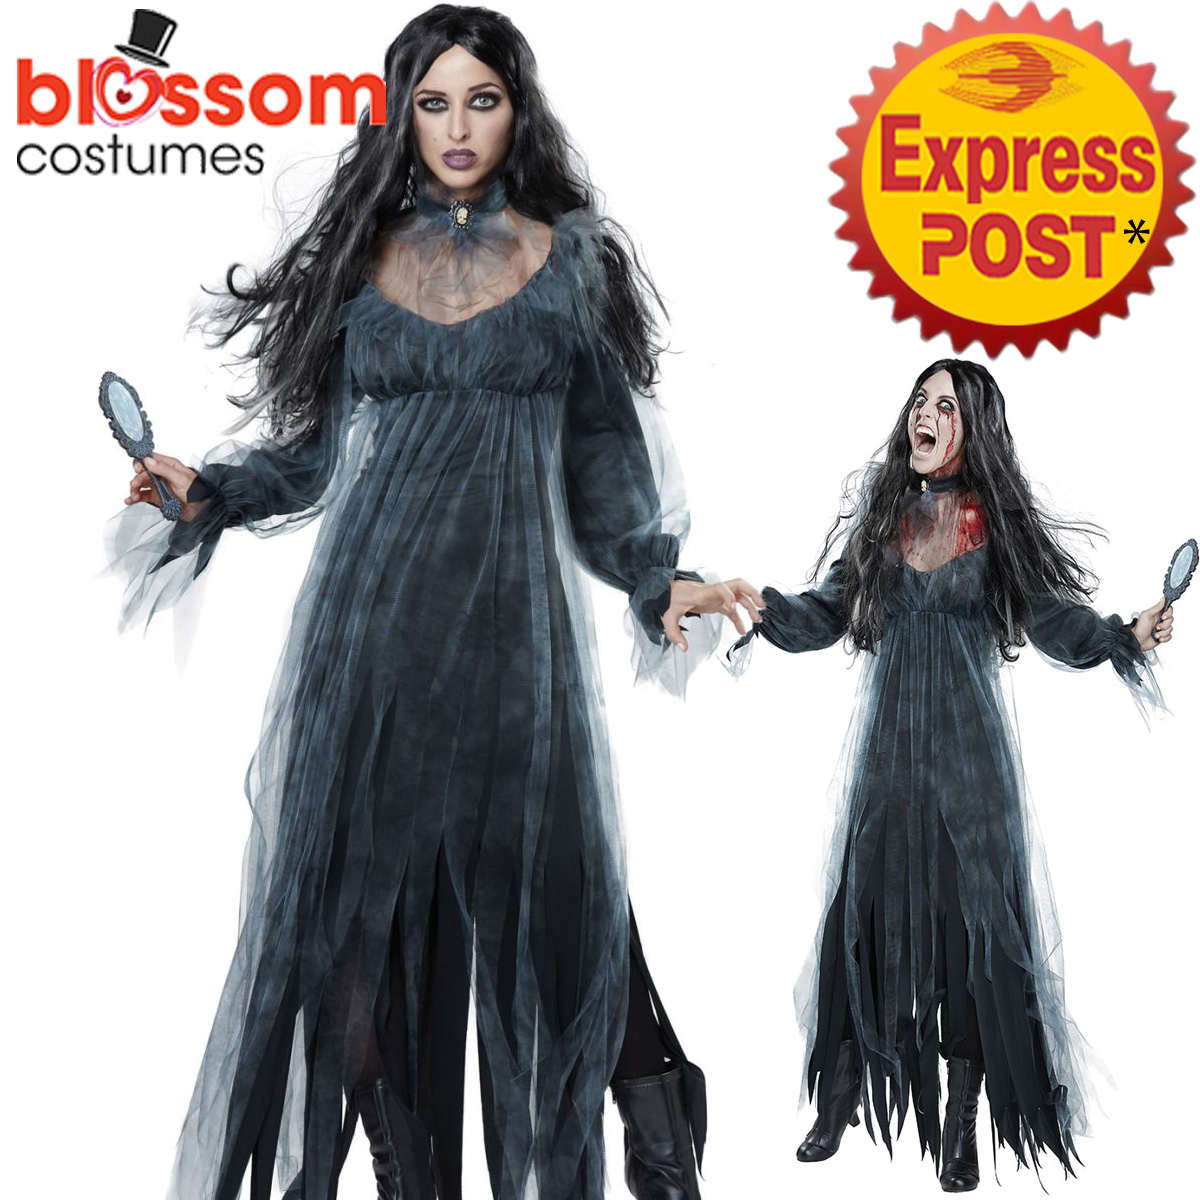 ca708 ladies bloody mary legend ghost costume halloween horror scary